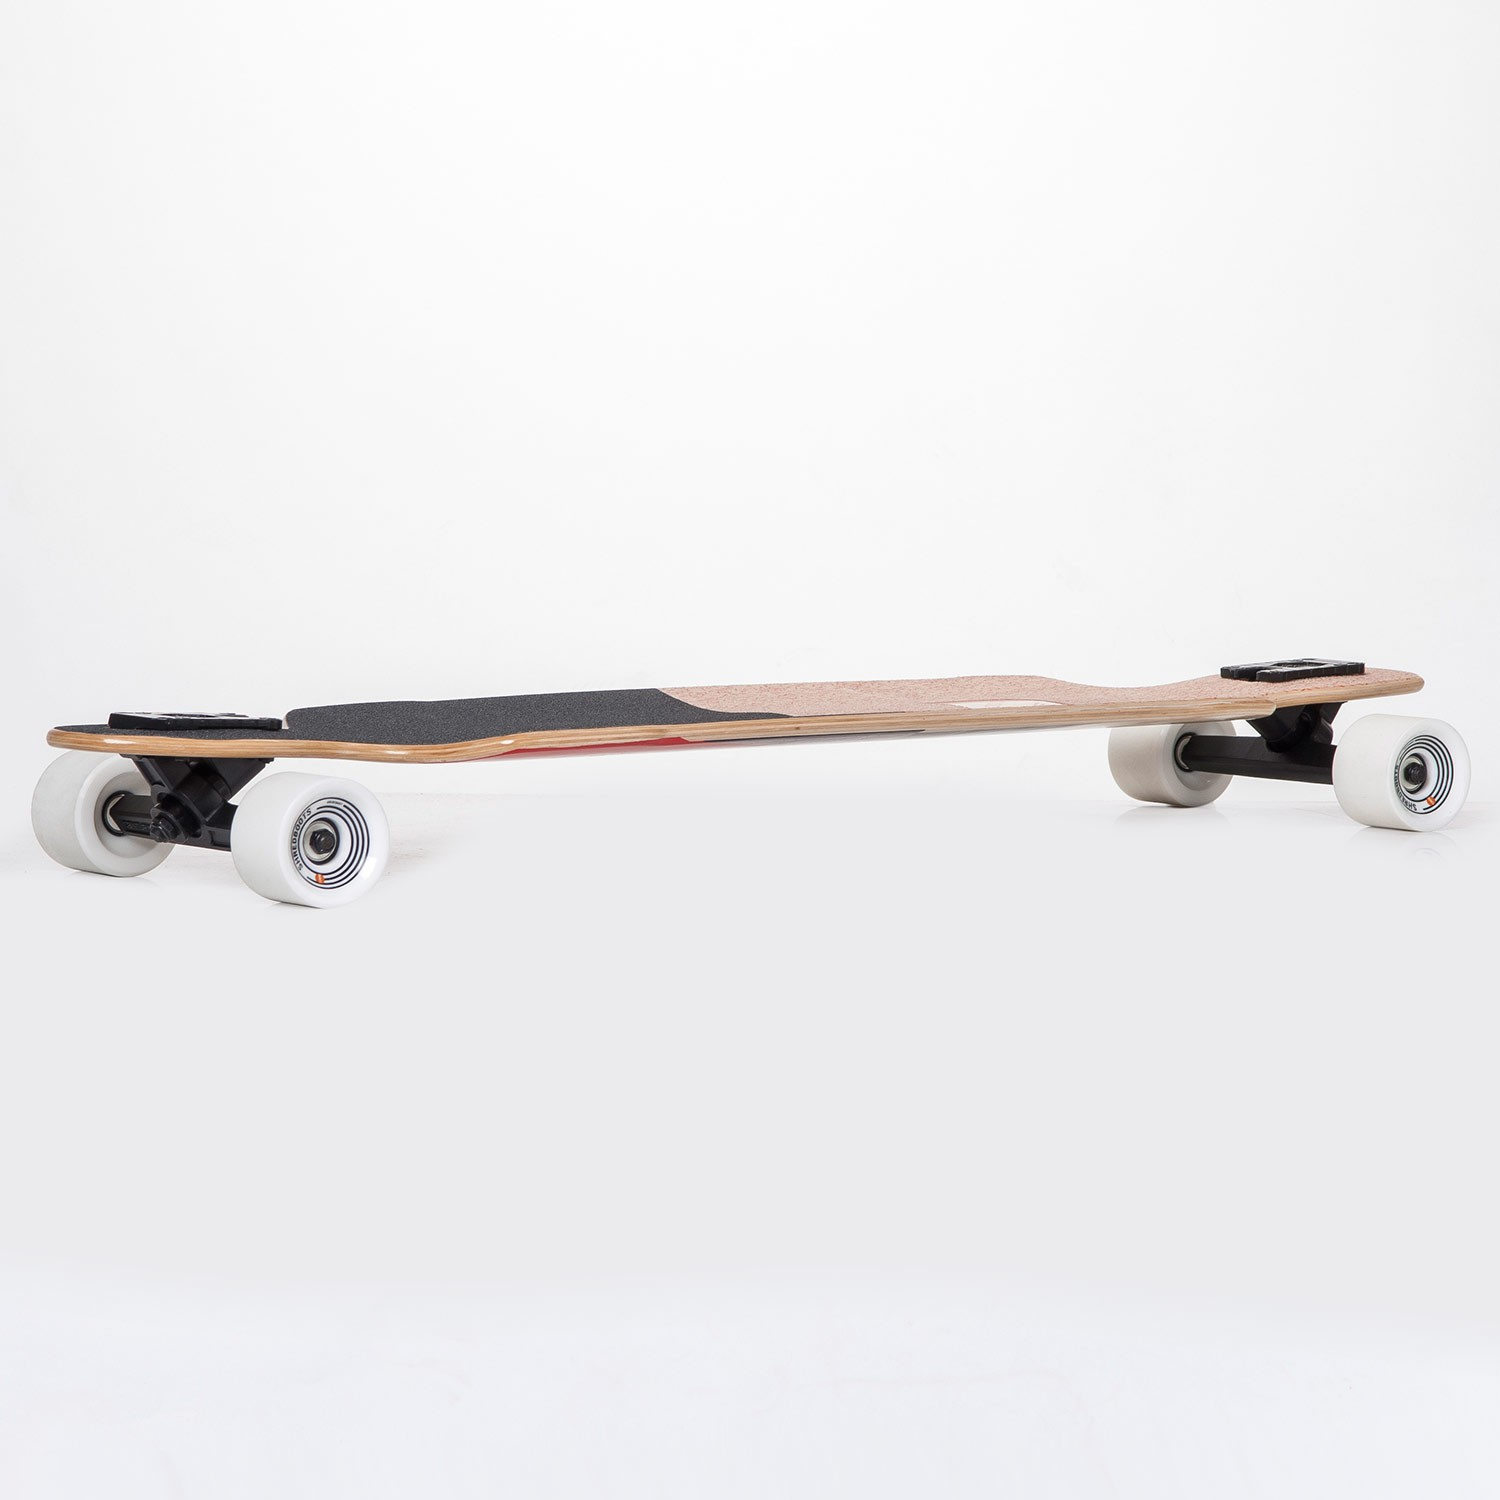 Longboard Goldcoast Rosette Drop Through